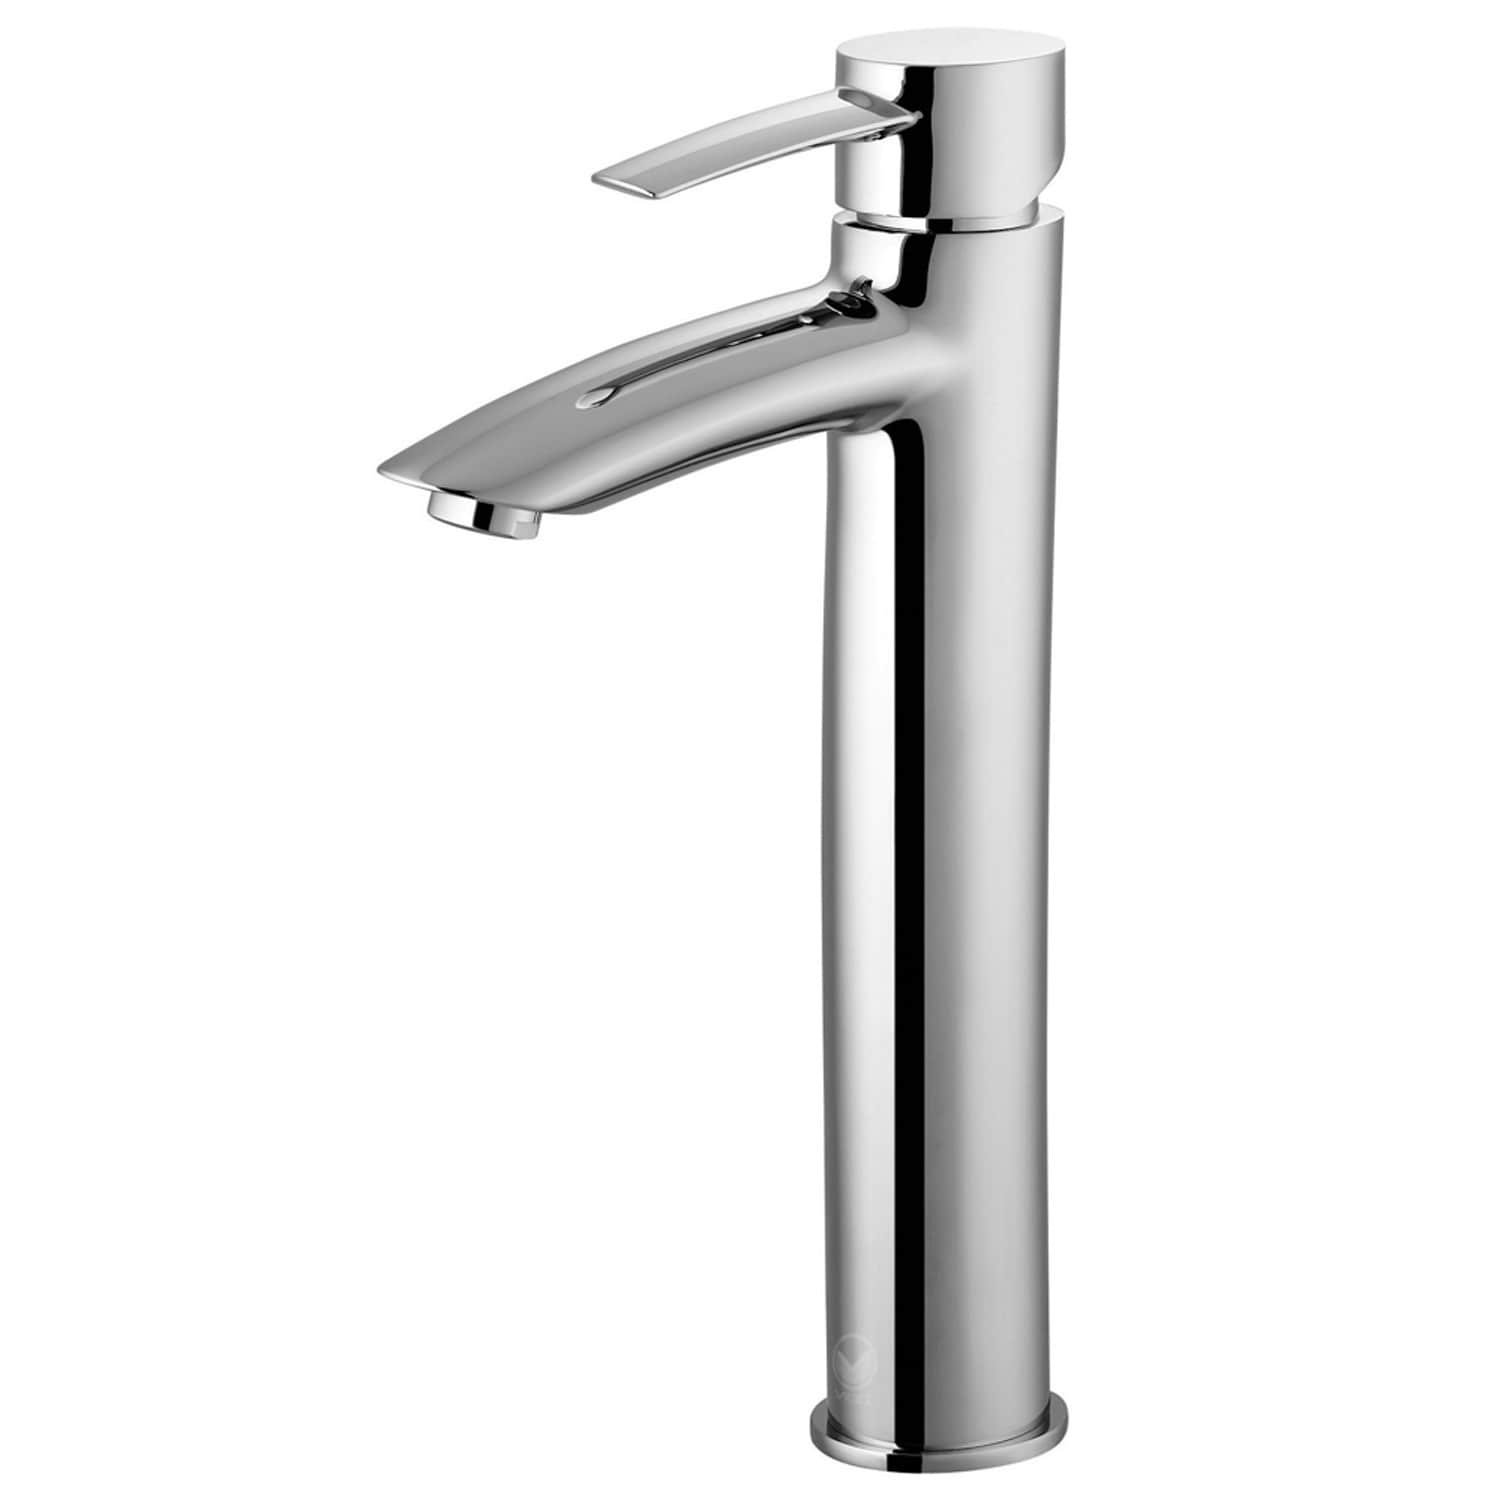 VIGO Shadow Single Lever Vessel Bathroom Faucet, Chrome by VIGO (Image #1)